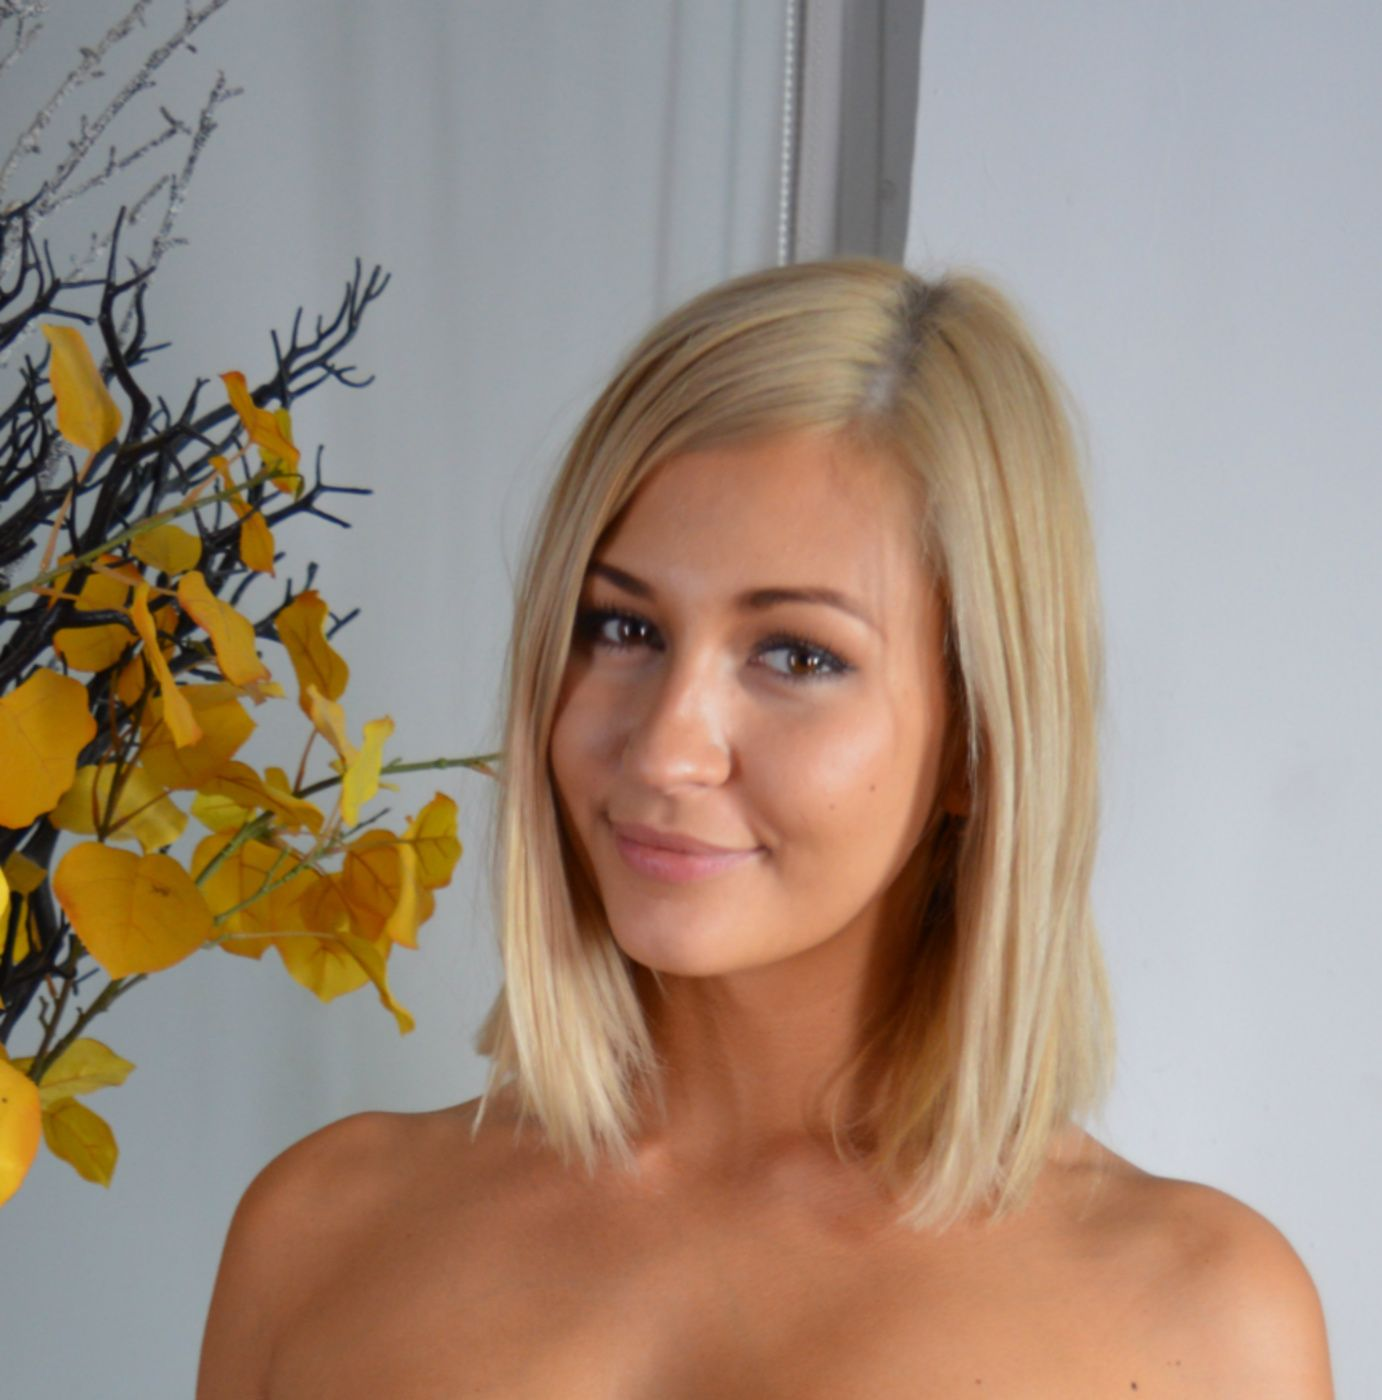 Box of photos: Want To See Me Naked-Tracy Lindsay #sexy # ...